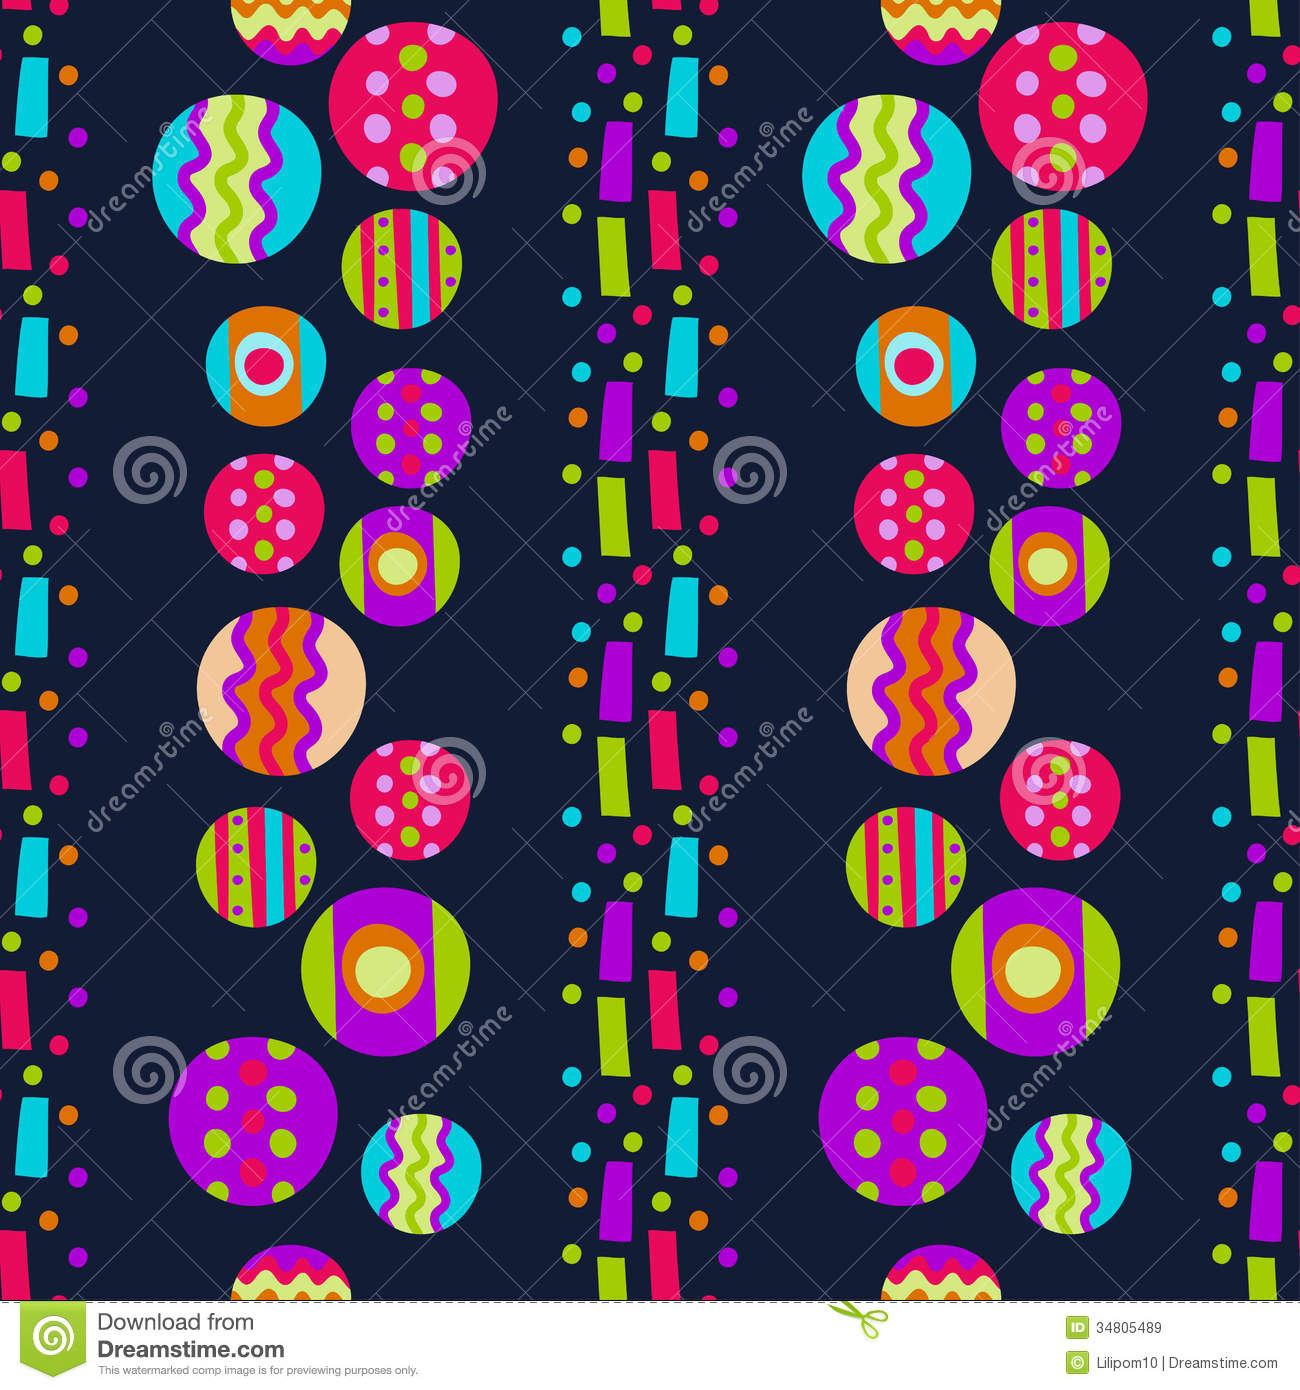 Seamless Pattern With Bright Abstract Shapes Royalty Free